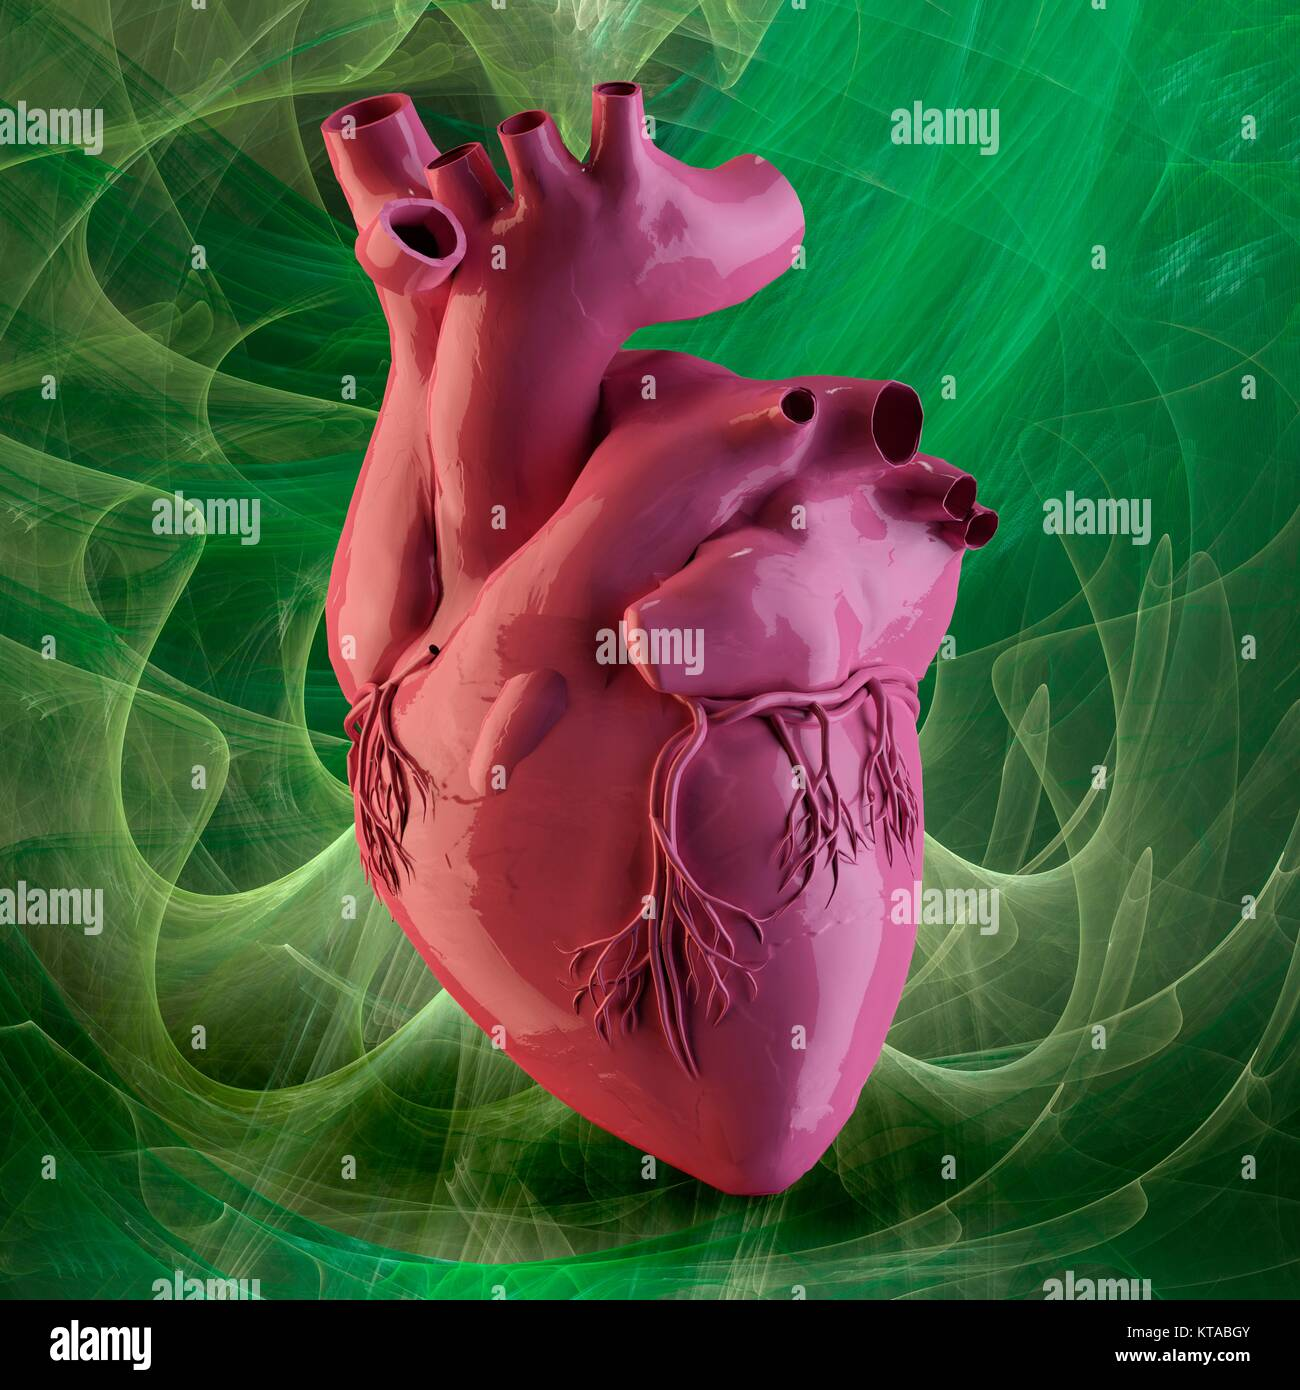 Heart And Coronary Arteries3d Computer Illustration Of The External